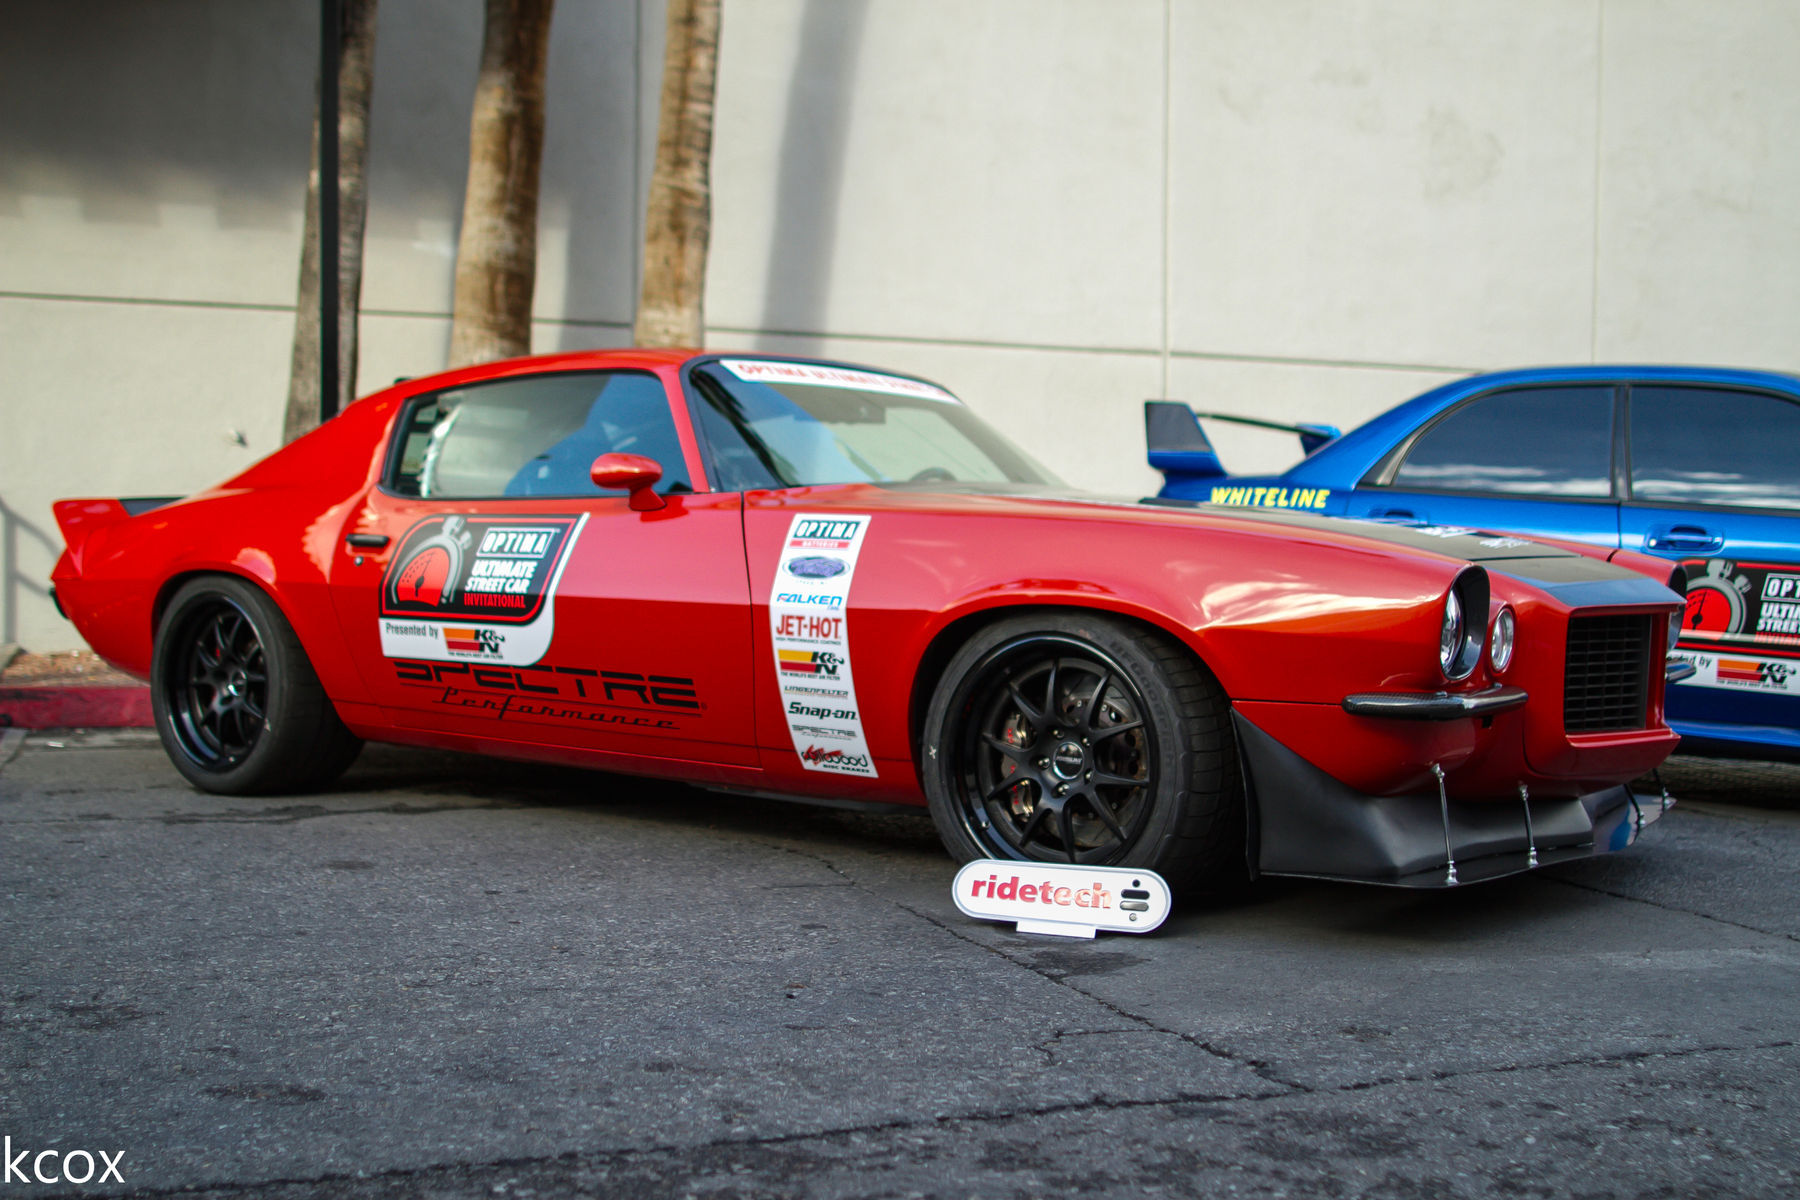 1973 Chevrolet Camaro | Mary Pozzi's '73 Camaro on Forgeline GA3 Wheels at the 2015 SEMA Show